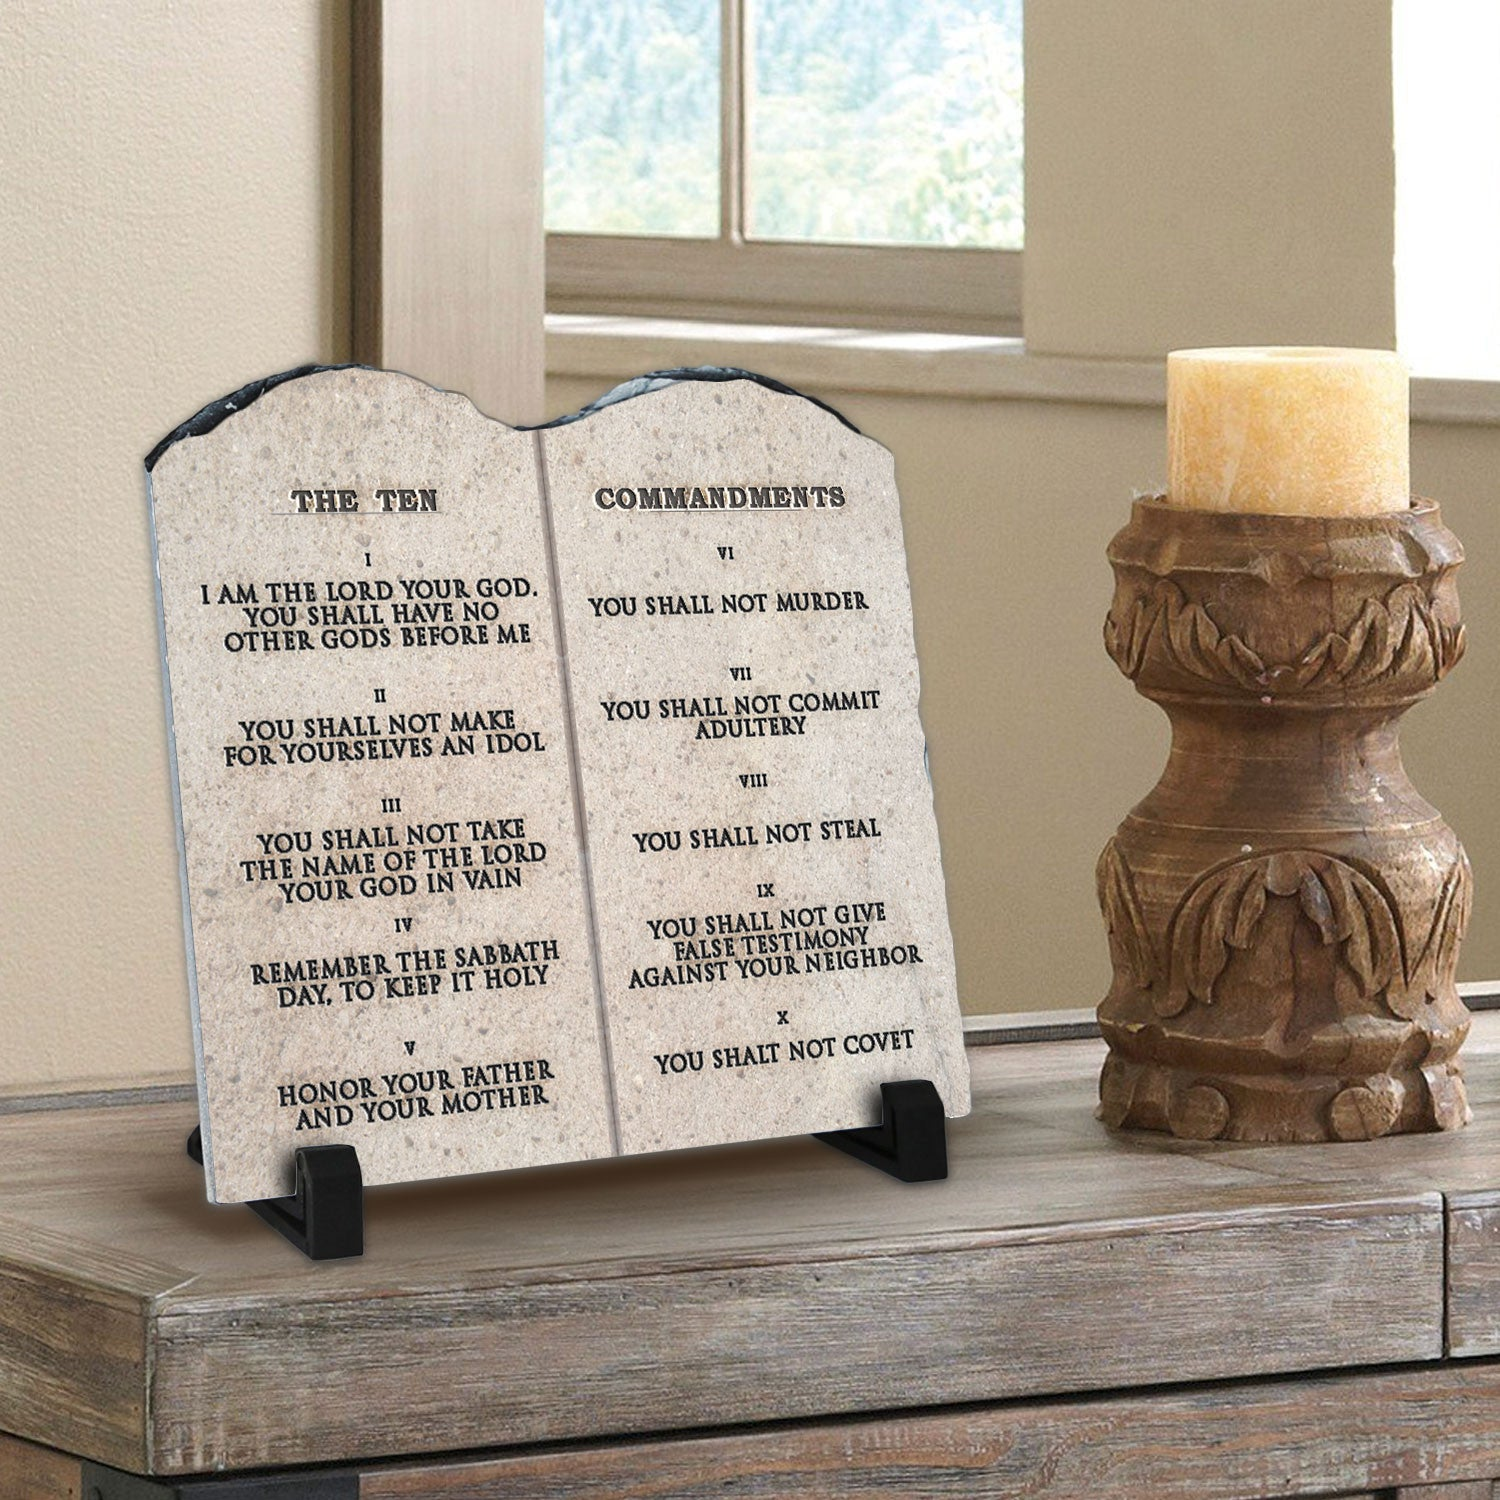 Christian home decor - The Ten Commandments Superior Religious Inspirational Home D Cor By Inspiragifts High Quality Christmas Gift Christian Home Plaque Stone Gift